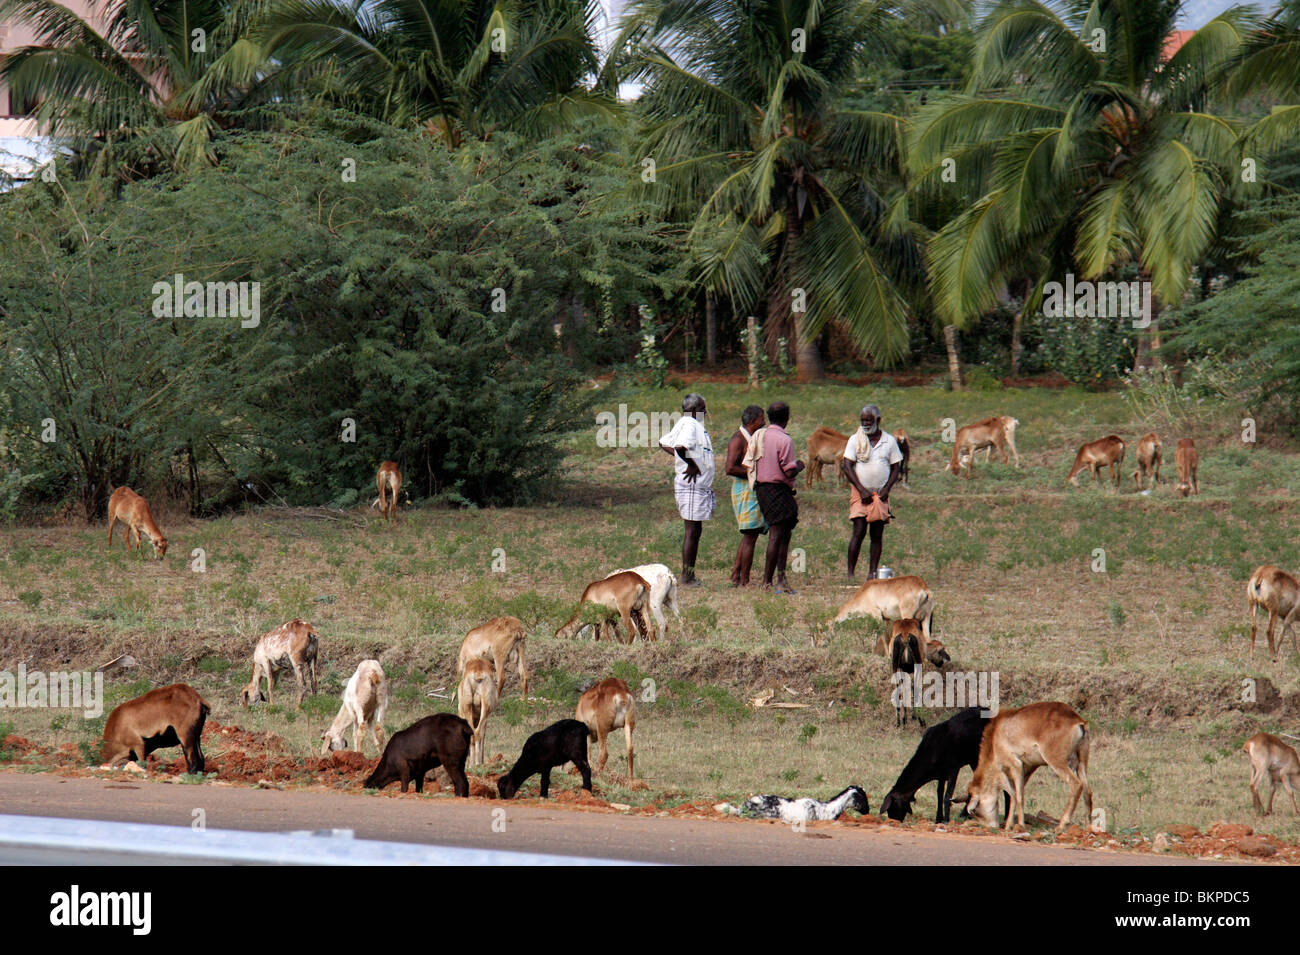 A goat farm in a rural south indian villag of thirunelveli in tamilnadu indiaasia